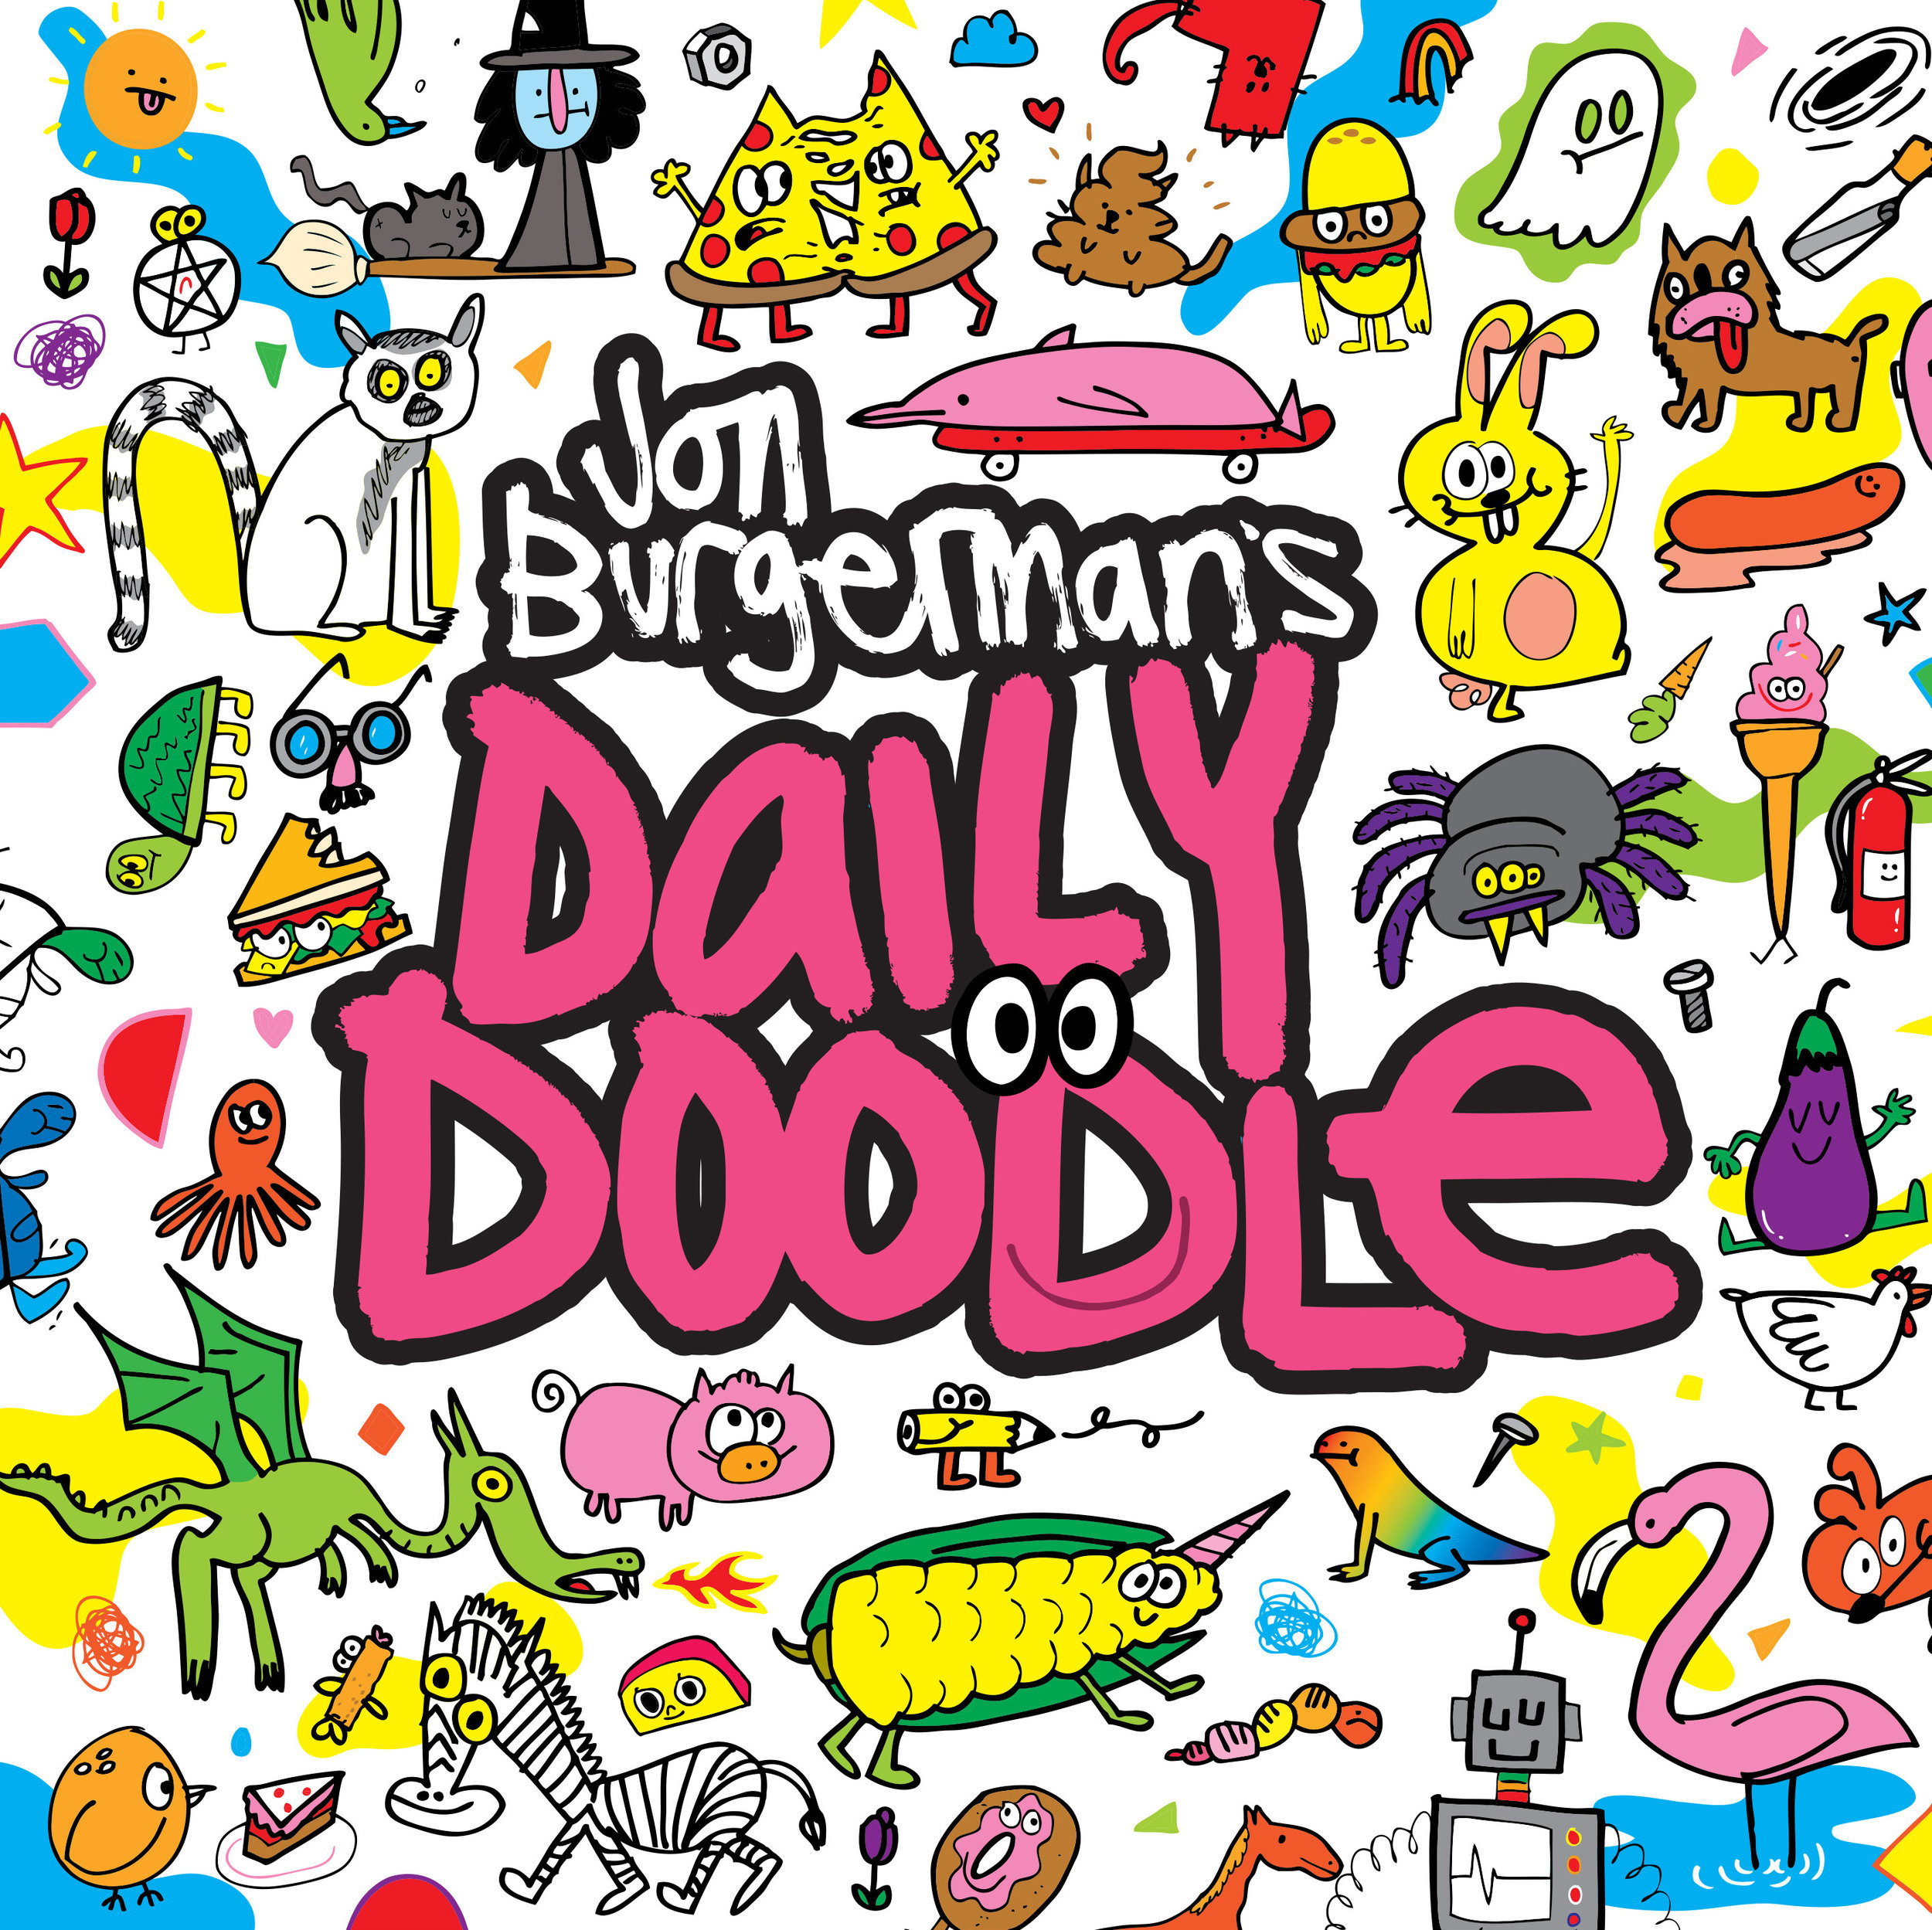 We adore this cover and all the ridiculously fun and engaging doodling prompts in this book, which comes with cool doodle stickers to complete and stick anywhere!